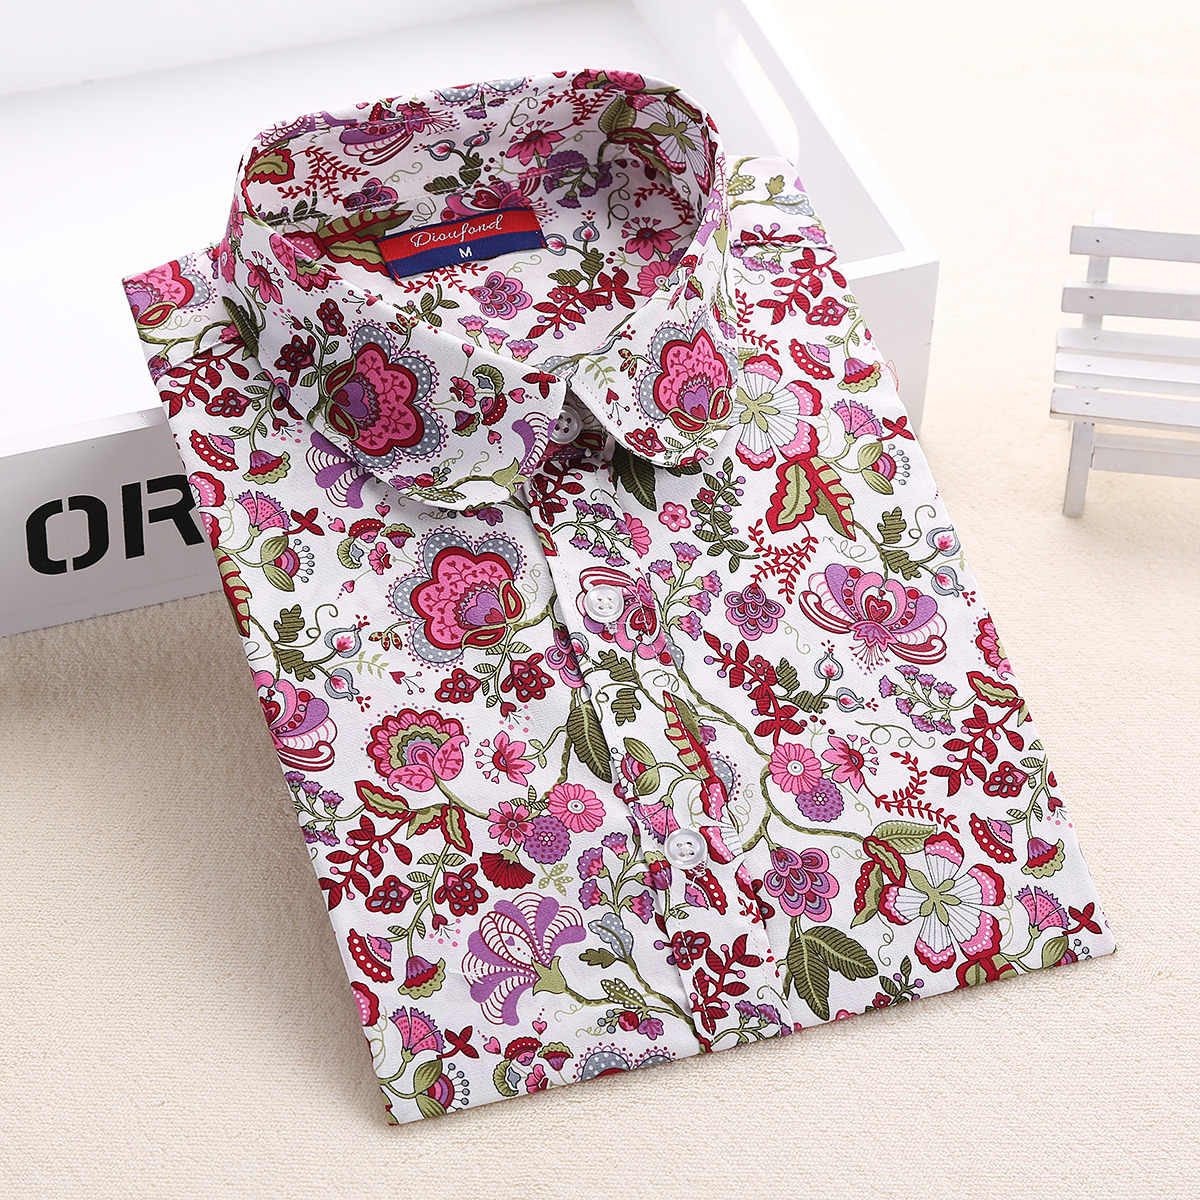 Dioufond Floral Shirts Women Blouses Blouse Cotton Blusa Feminina Long Sleeve Shirt Women Tops And Blouses 2016 New Fashion 5XL